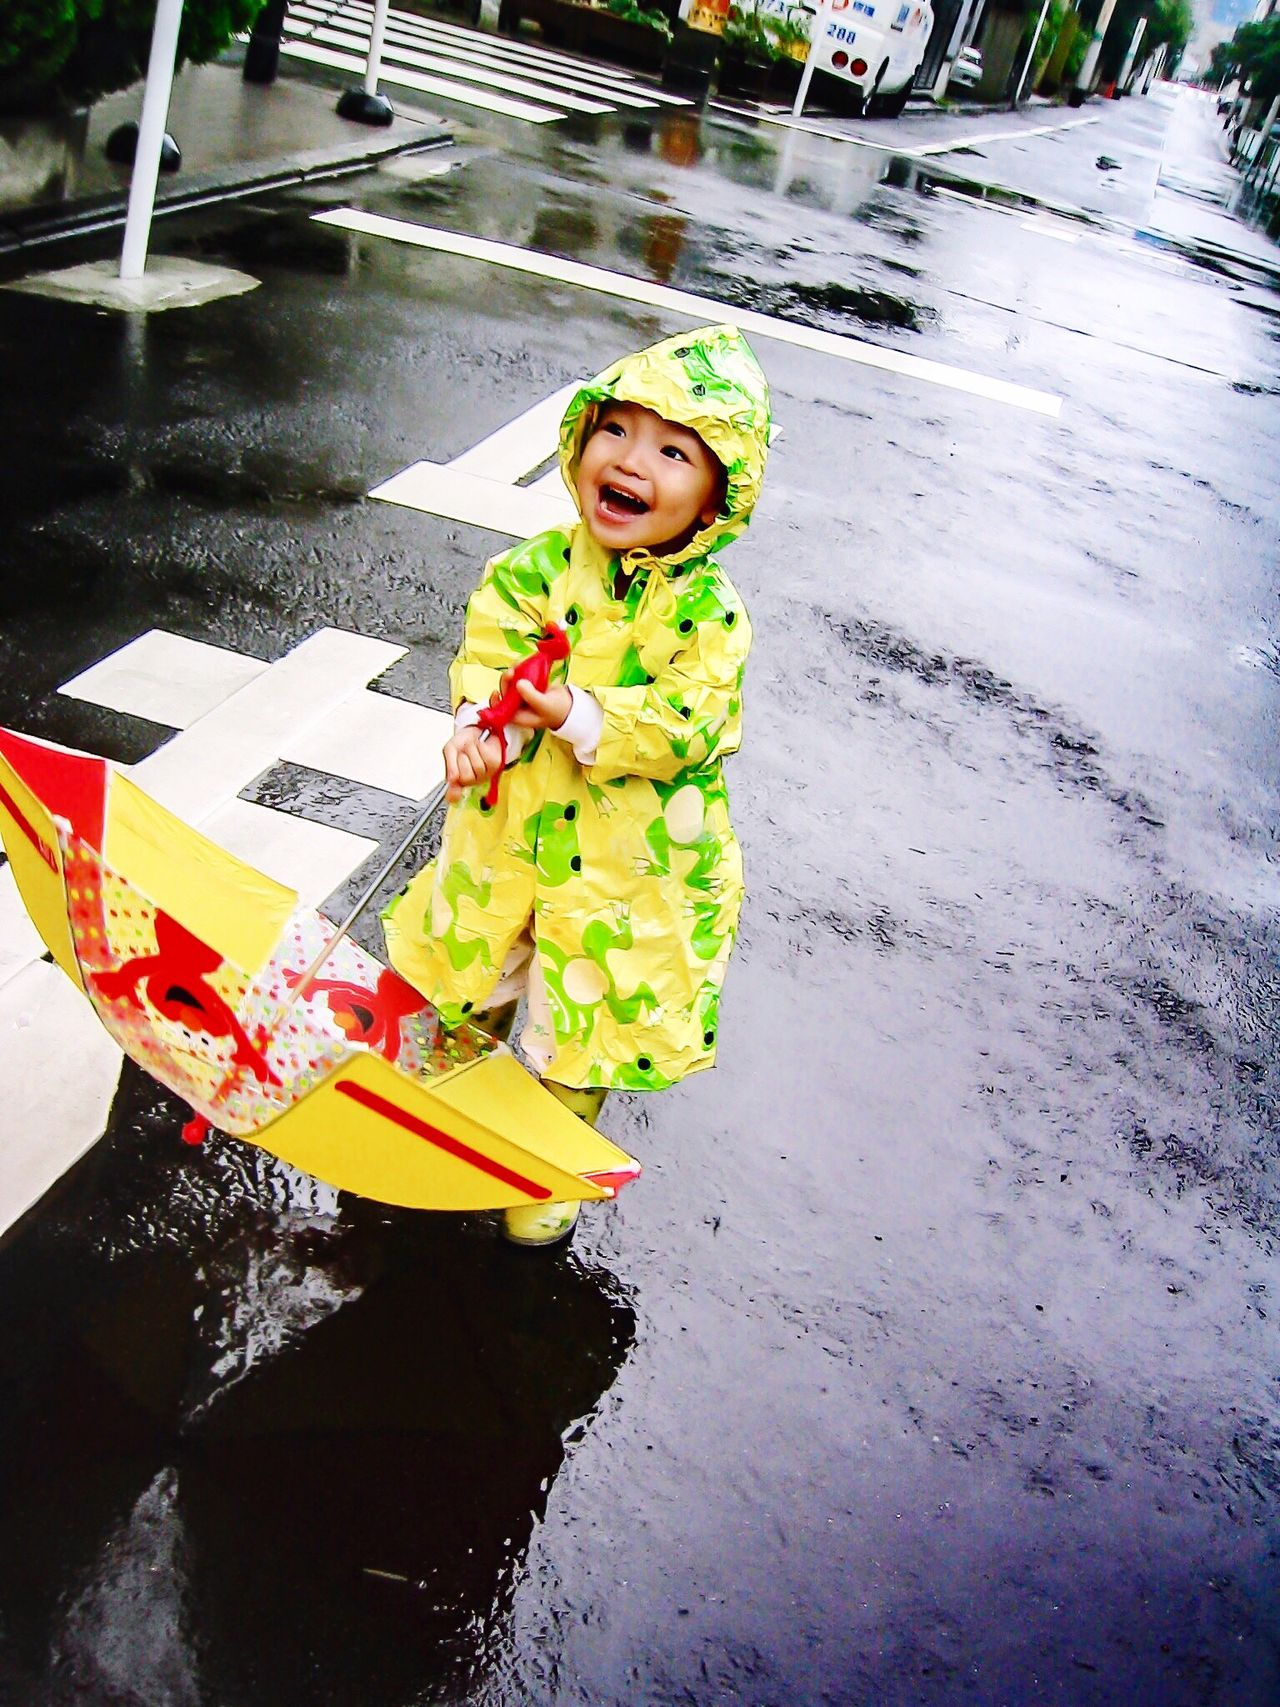 Singing in the rain Singing Singing In The Rain Rainy Days Rain Umbrella Raincoat Toddler  Boy Smile Big Smile Happy Happy People Cheerful Cheerfulness